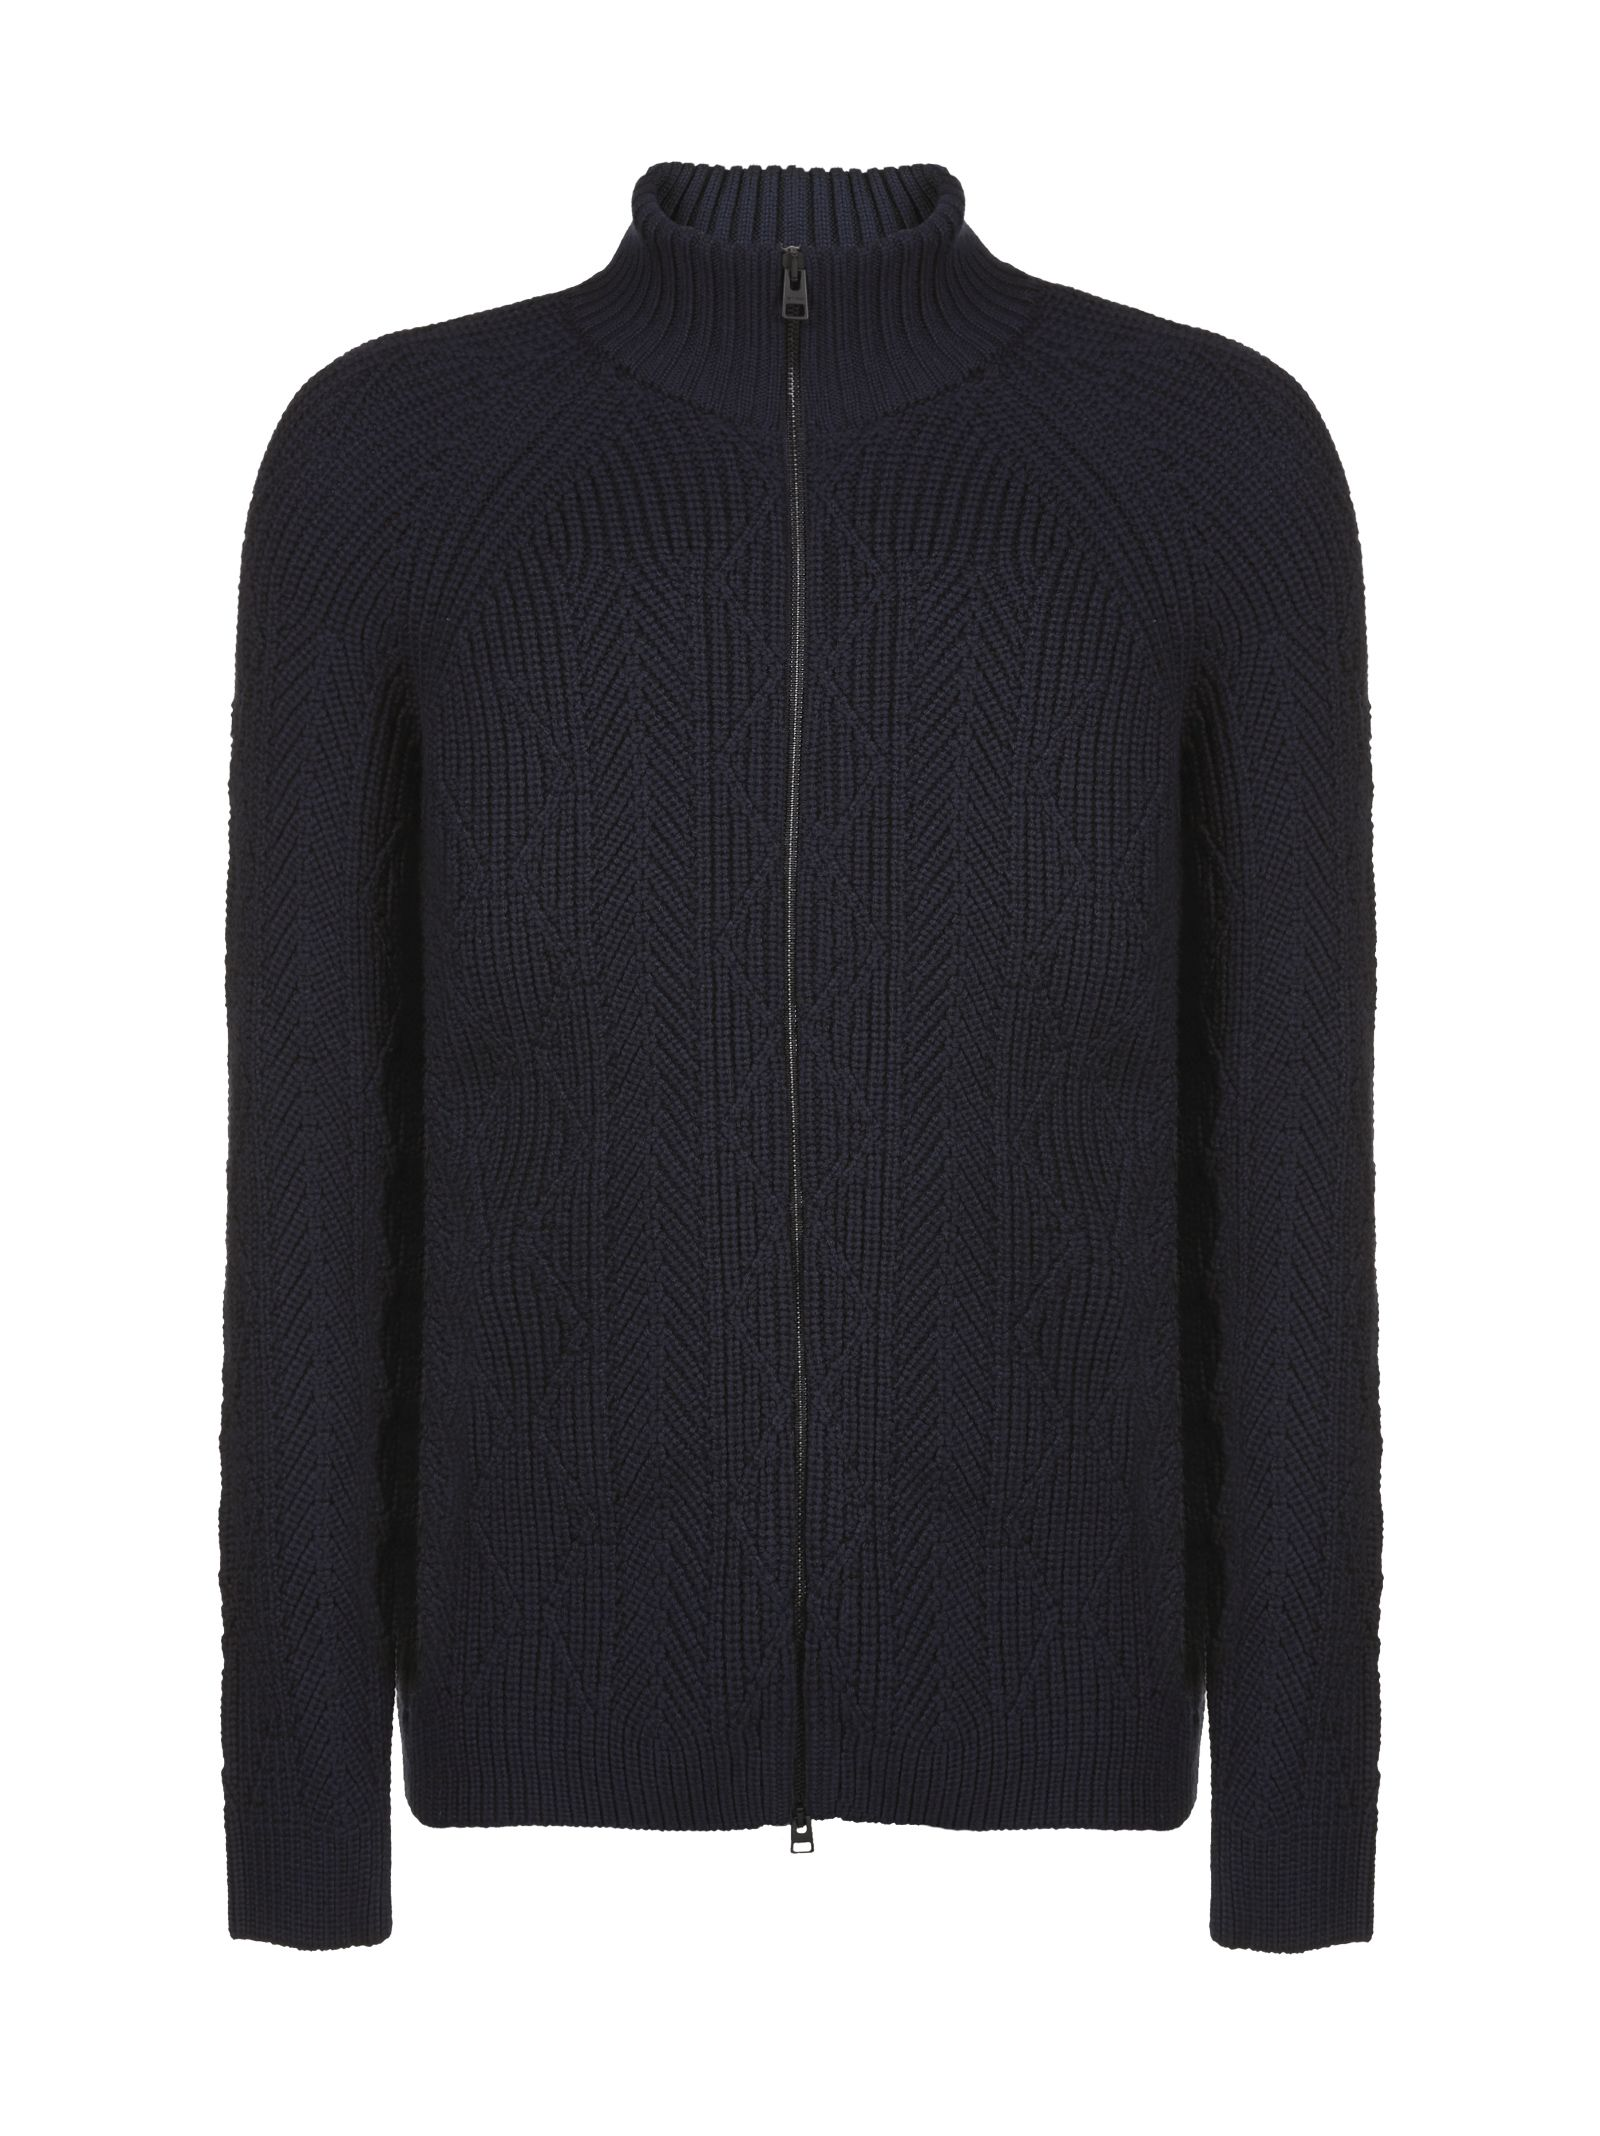 Etro Zip-up Cardigan